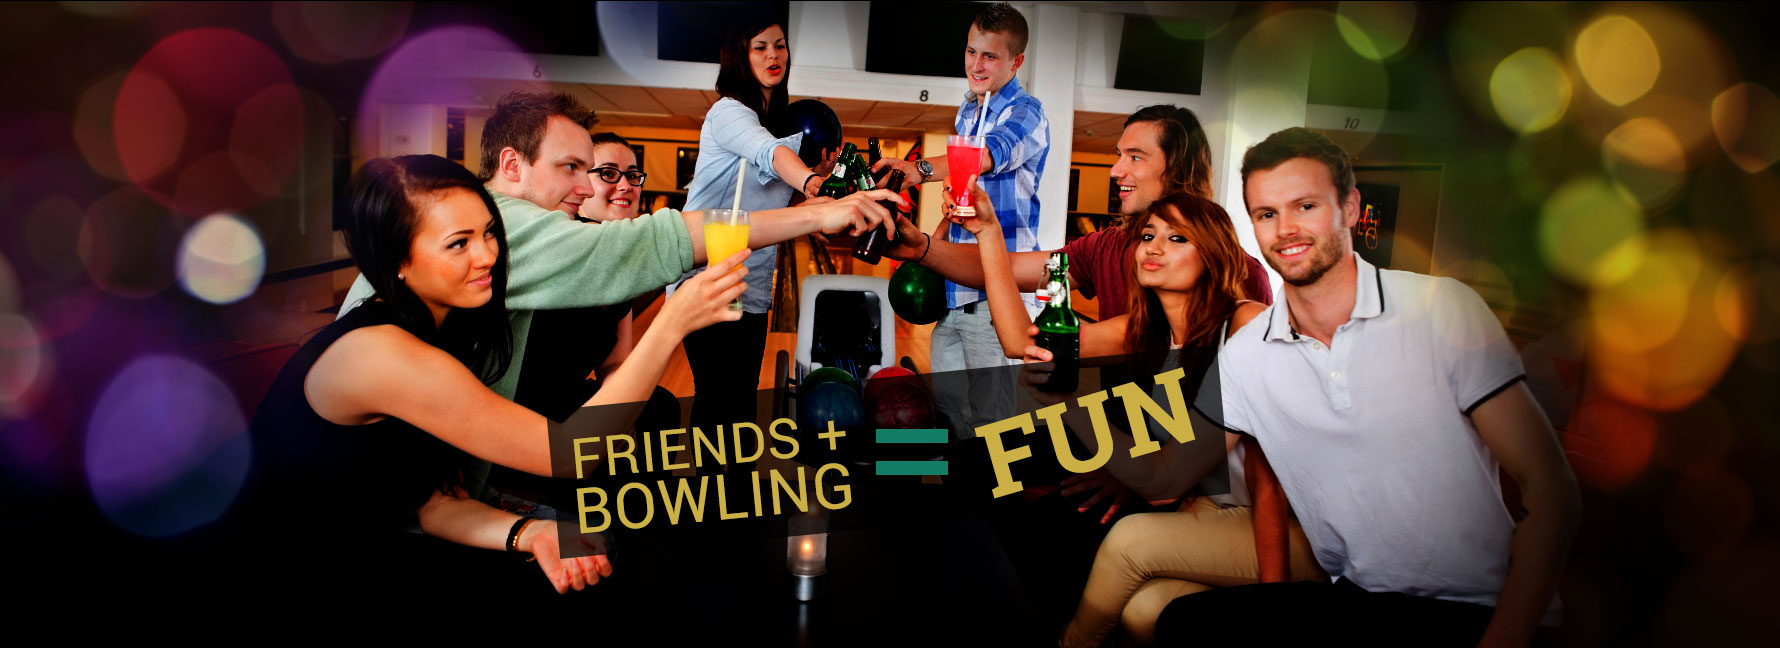 Friends + Bowing = Fun, Friends drinking together